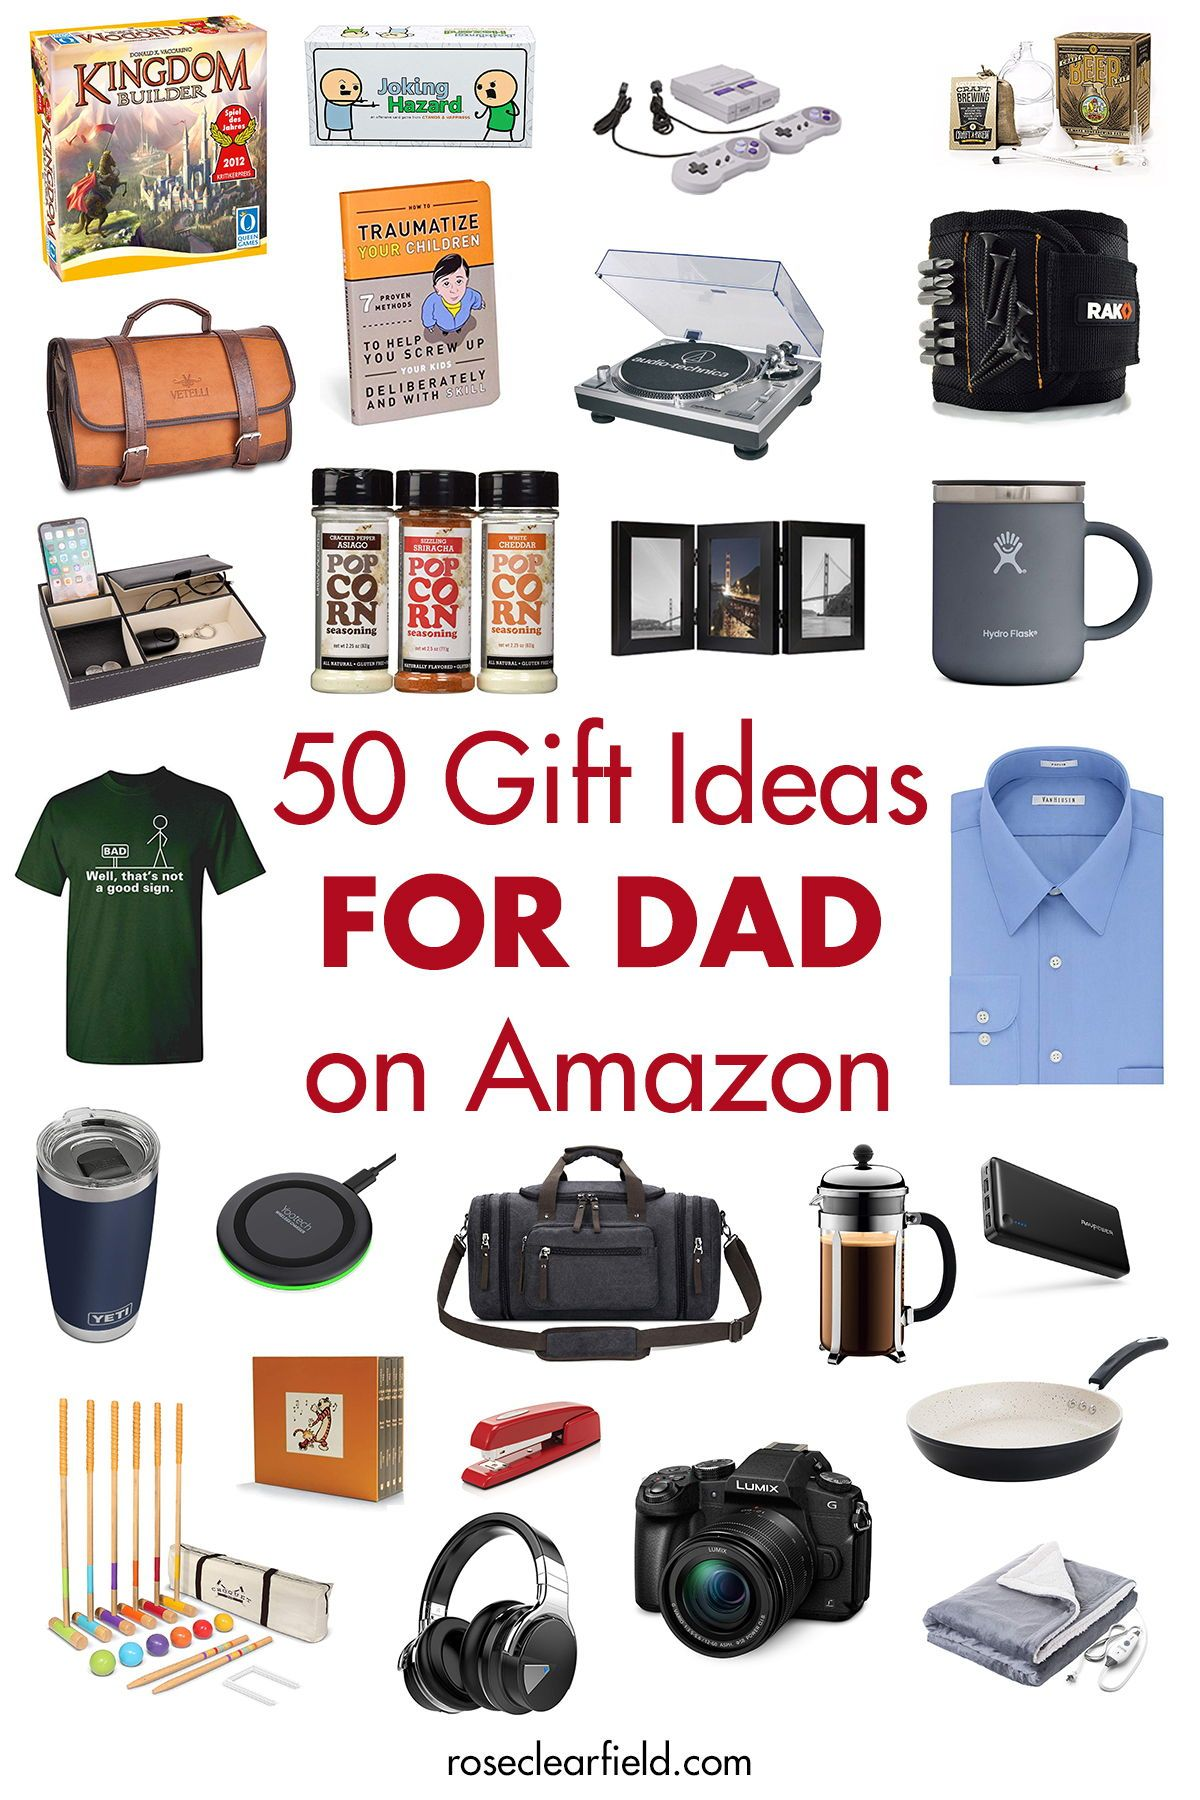 50 Gift Ideas For Dad On Amazon Diy Father S Day Gifts Unique Gifts For Dad Christmas Gift For Dad